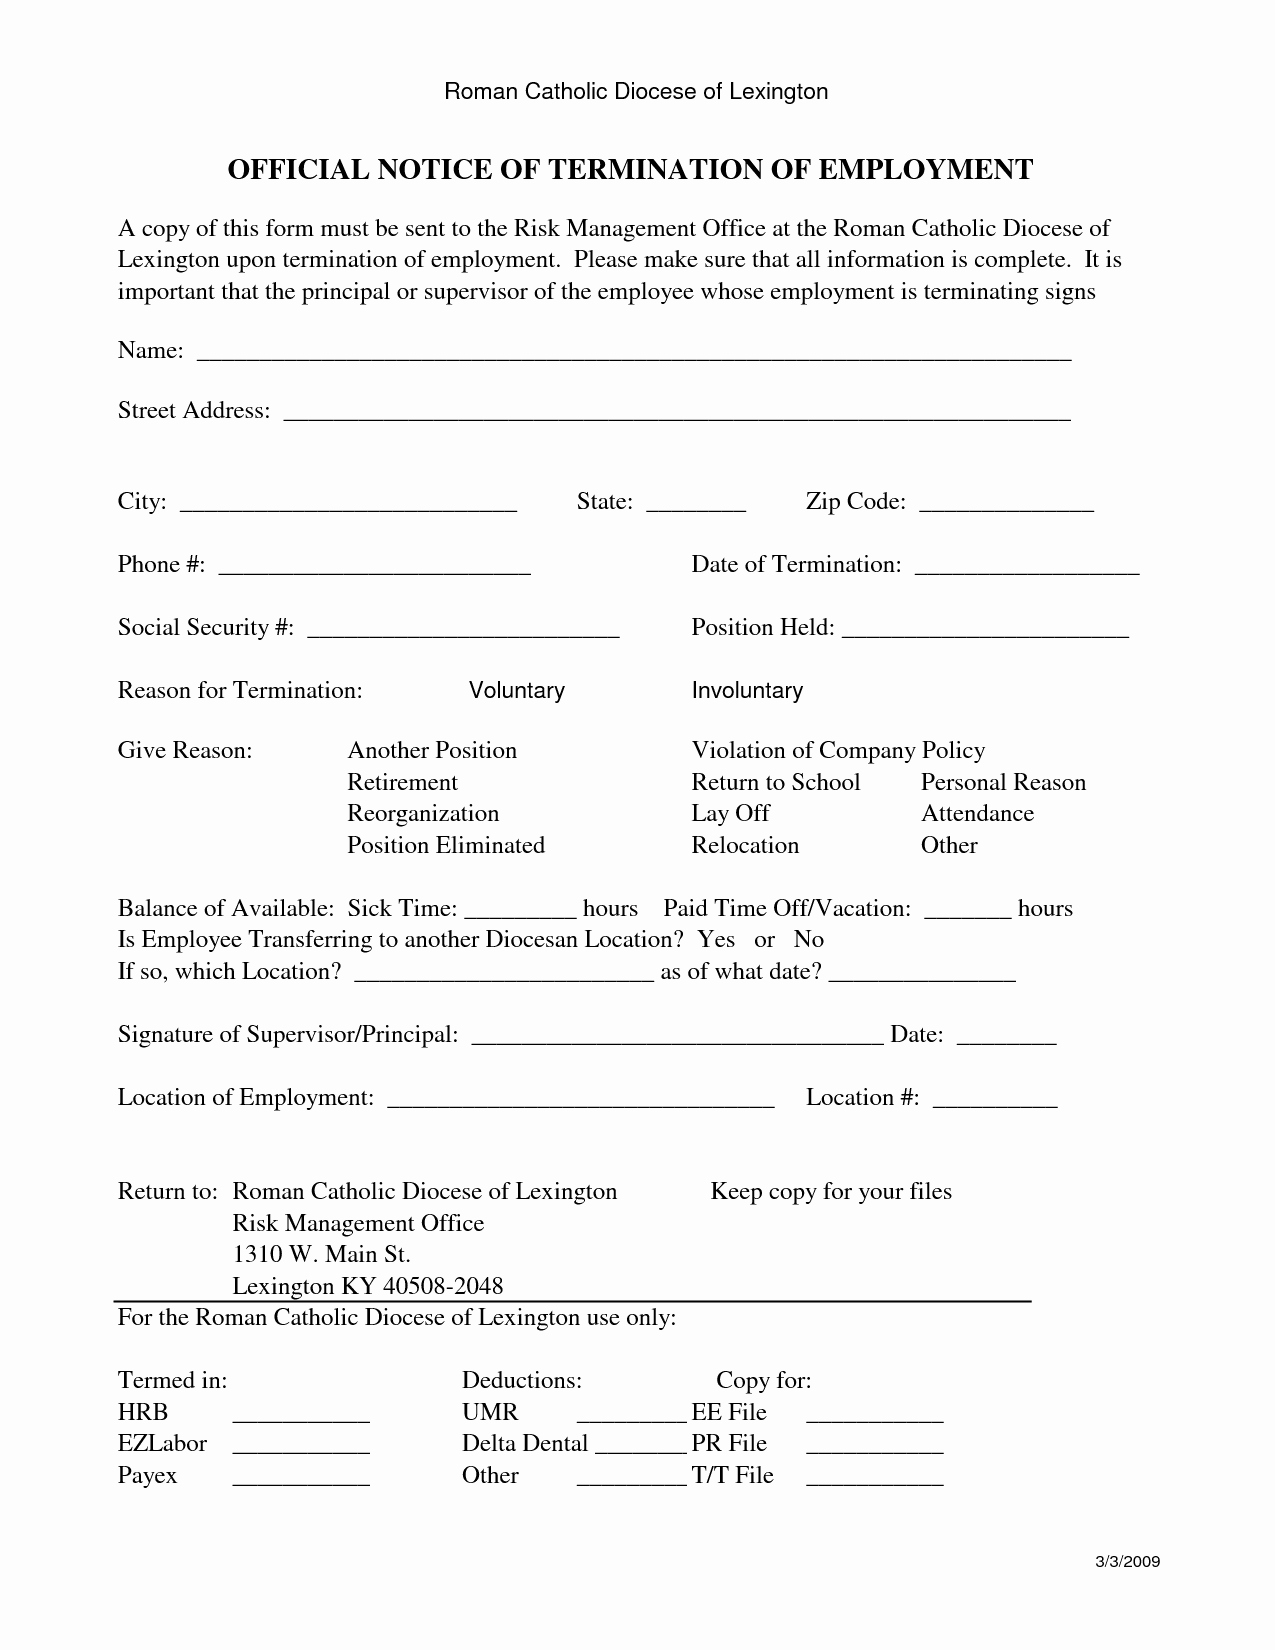 Employee Termination form Template Inspirational 9 Best Of Employee Termination Notice form Free